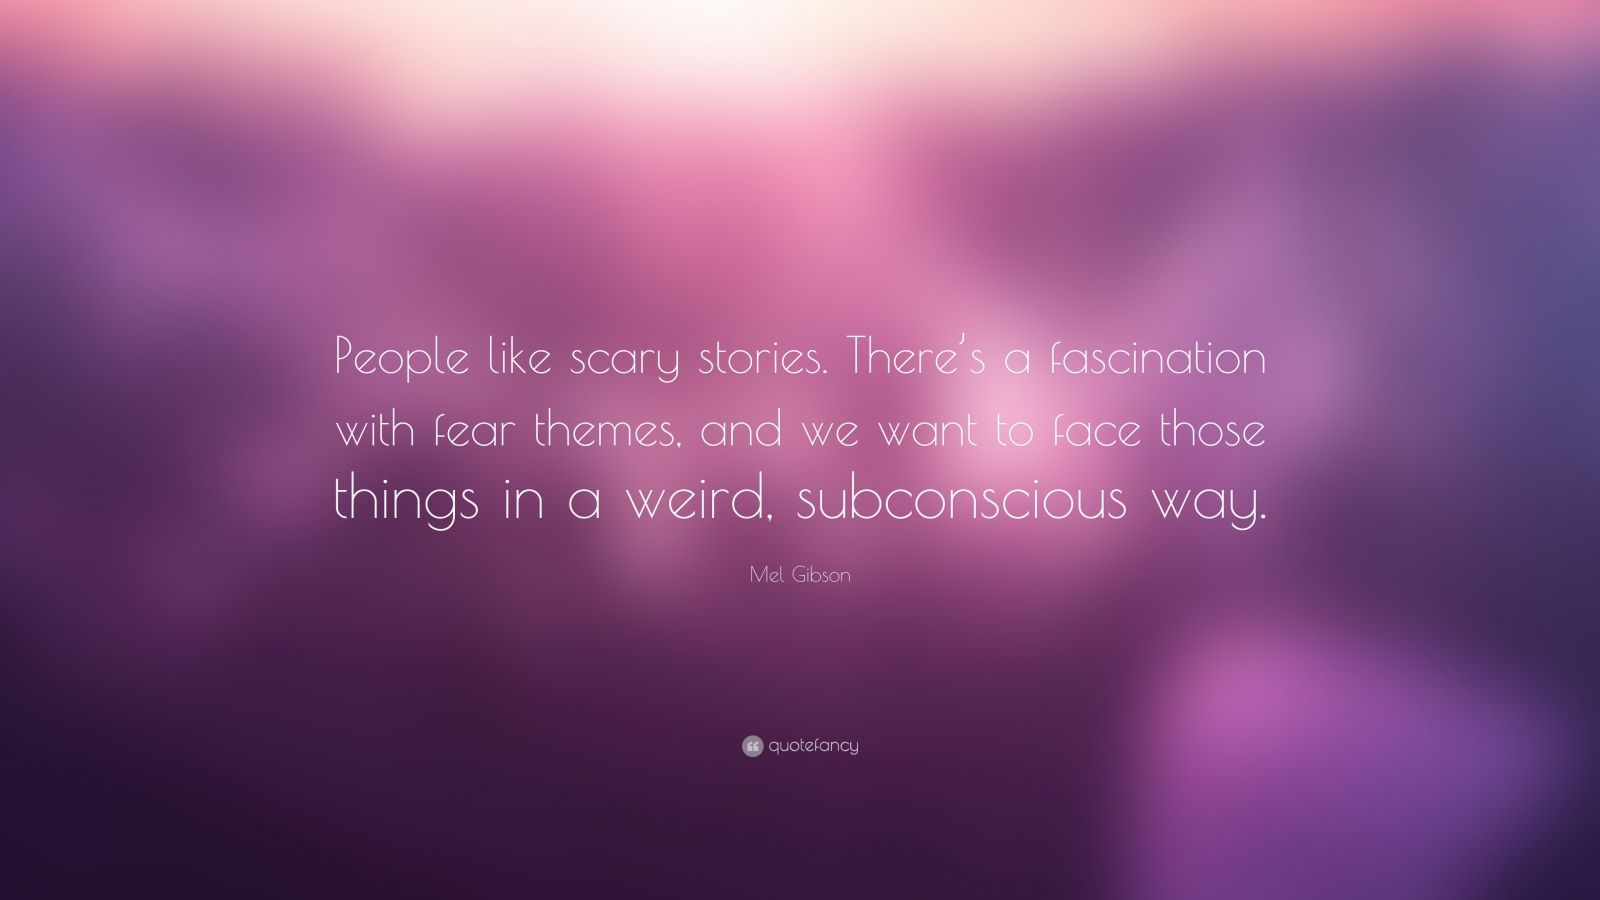 """Mel Gibson Quote: """"People like scary stories. There's a fascination with fear themes, and we want to face those things in a weird, subconscious way."""""""